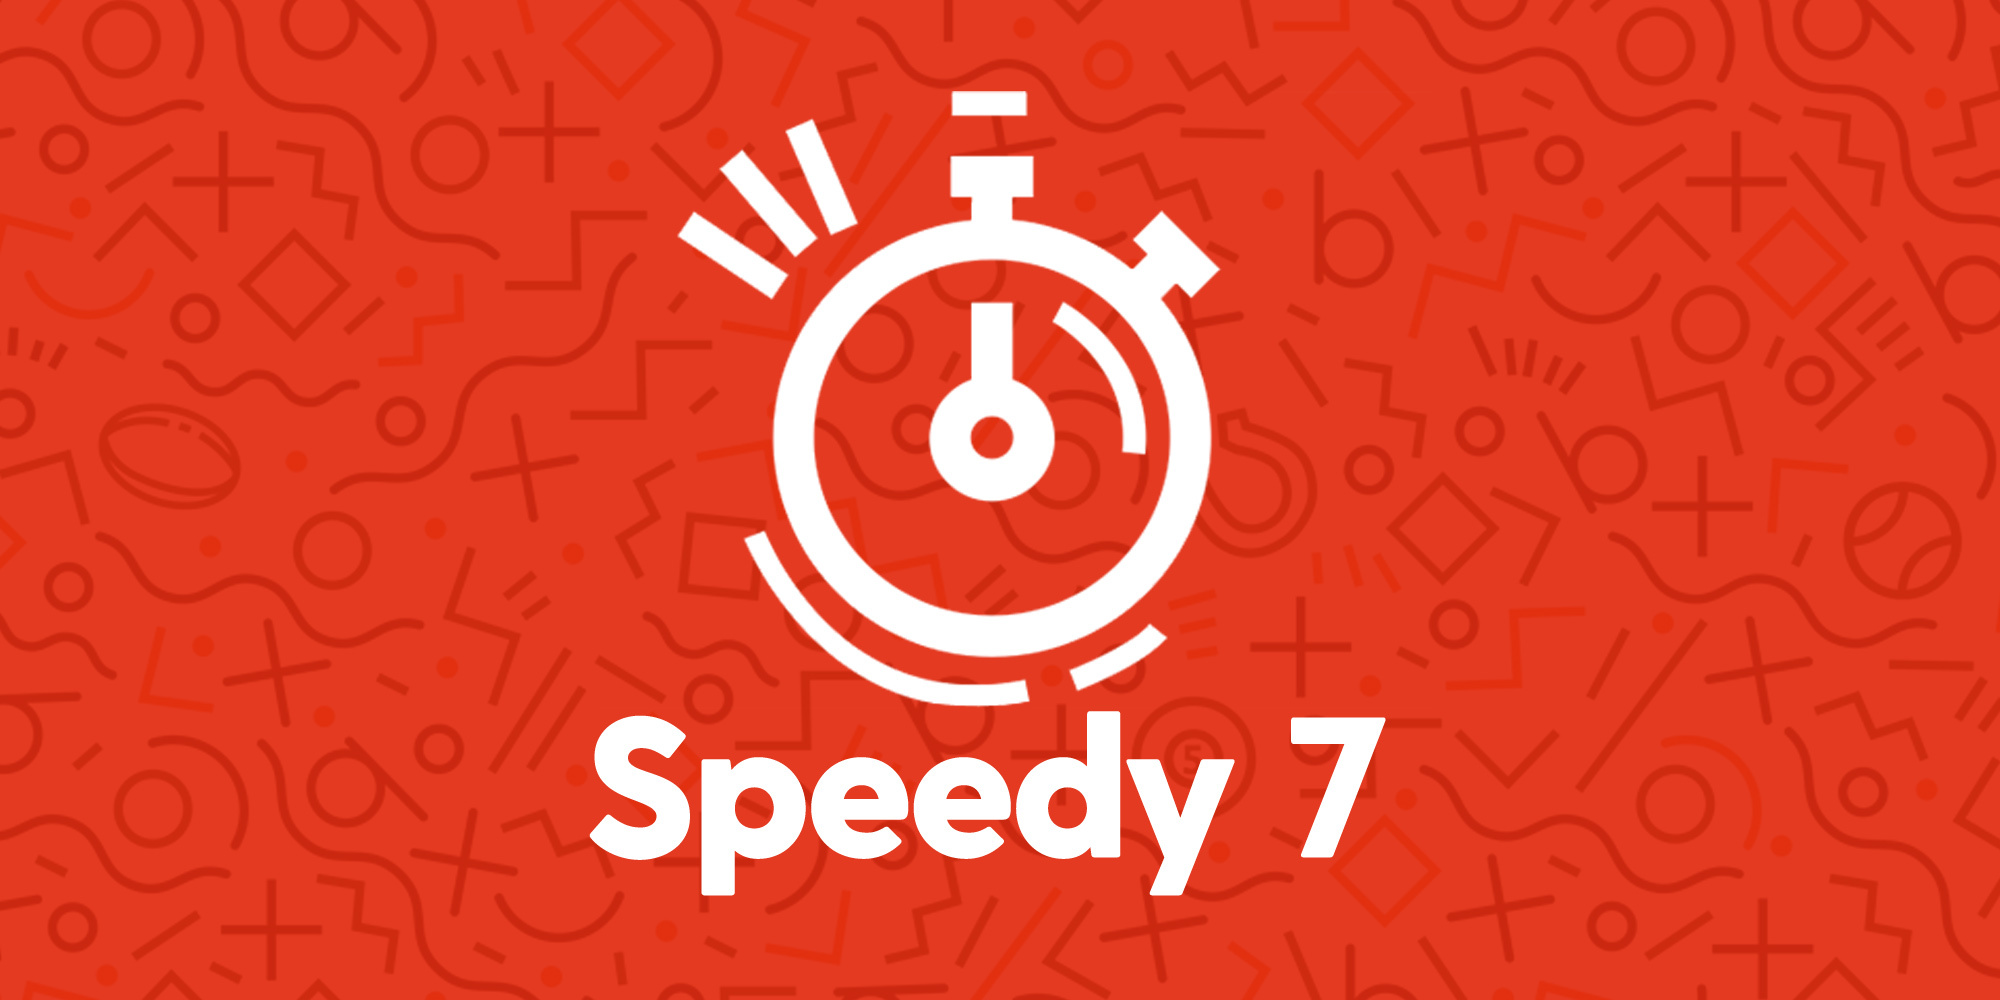 Speedy 7: How to play